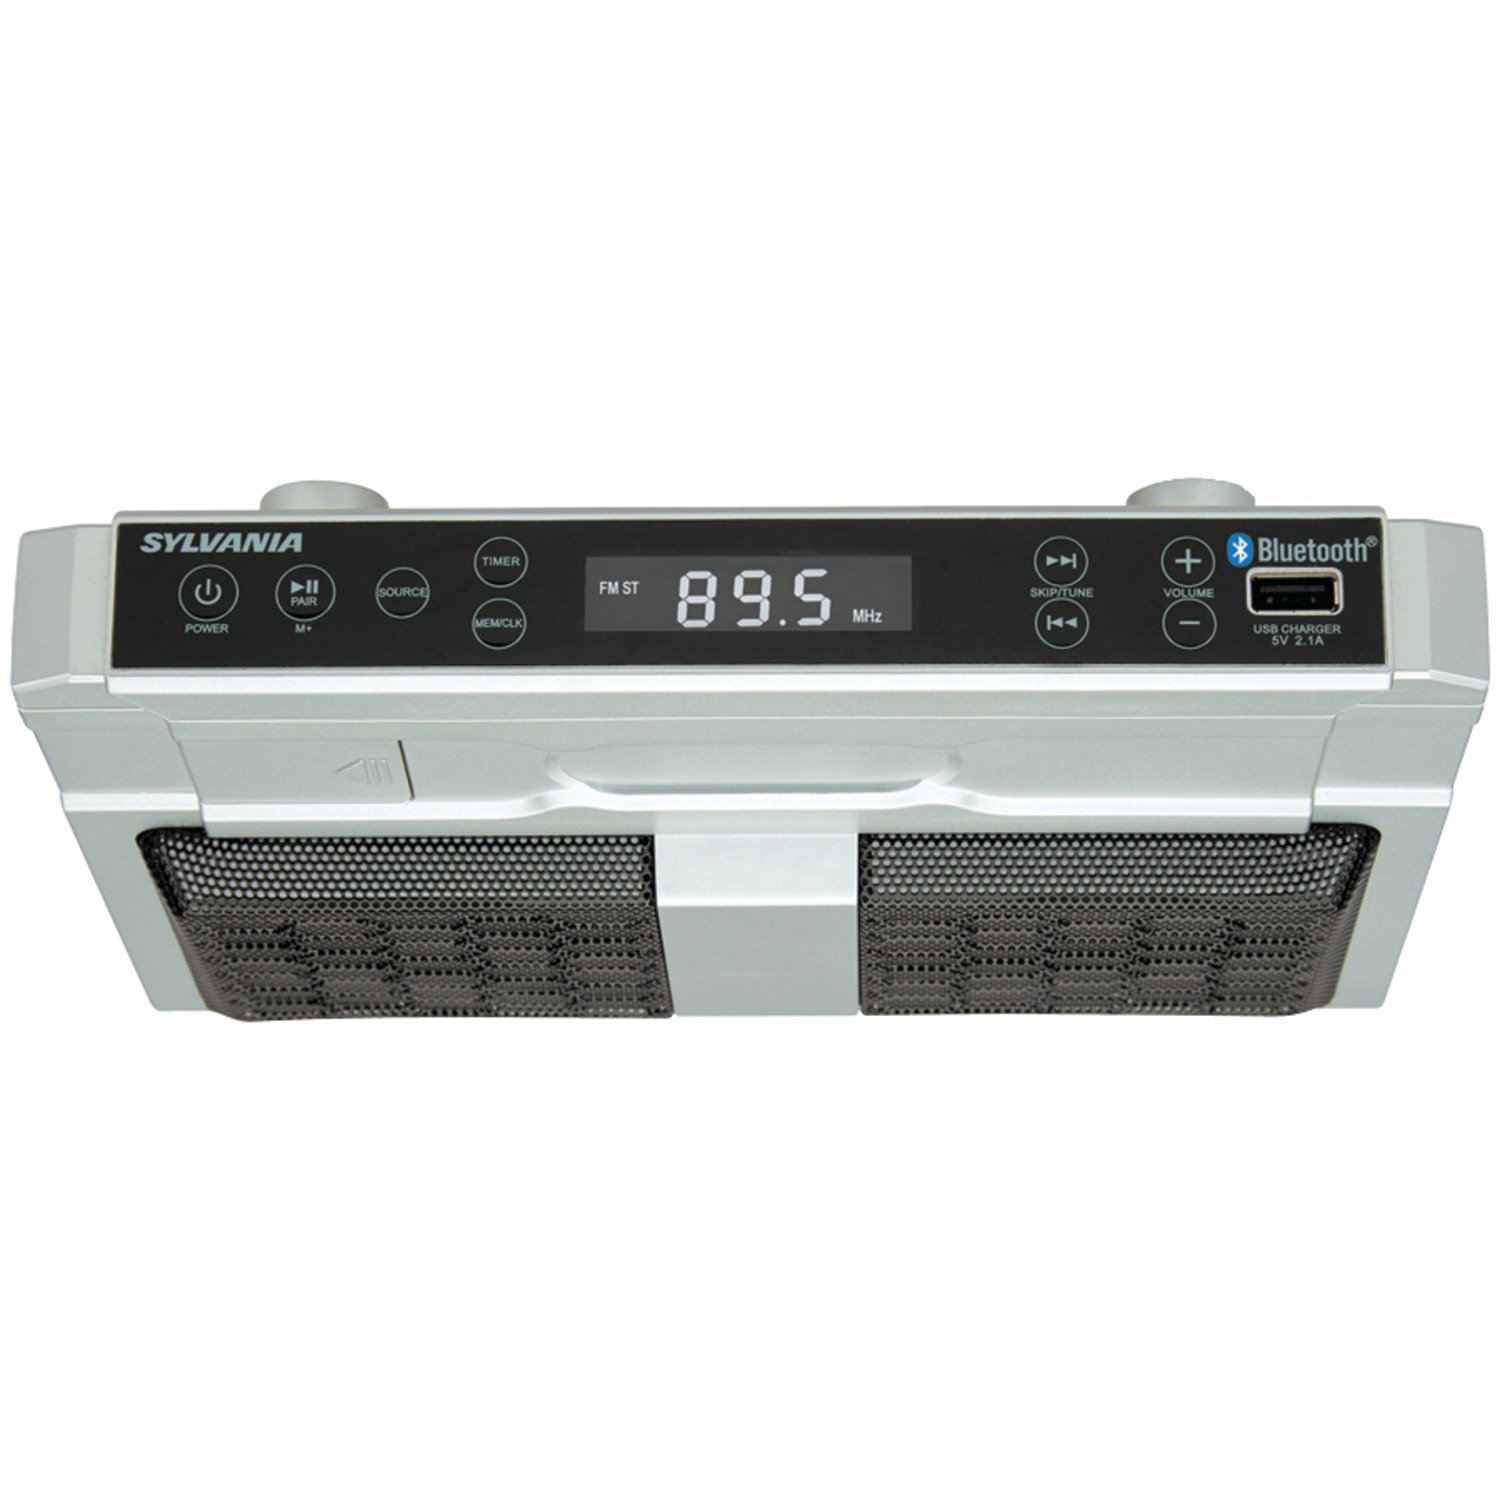 Sylvania SKCR2810BT Under Cabinet Clock Radio, Music System with Bluetooth Streaming and FM Radio by Sylvania